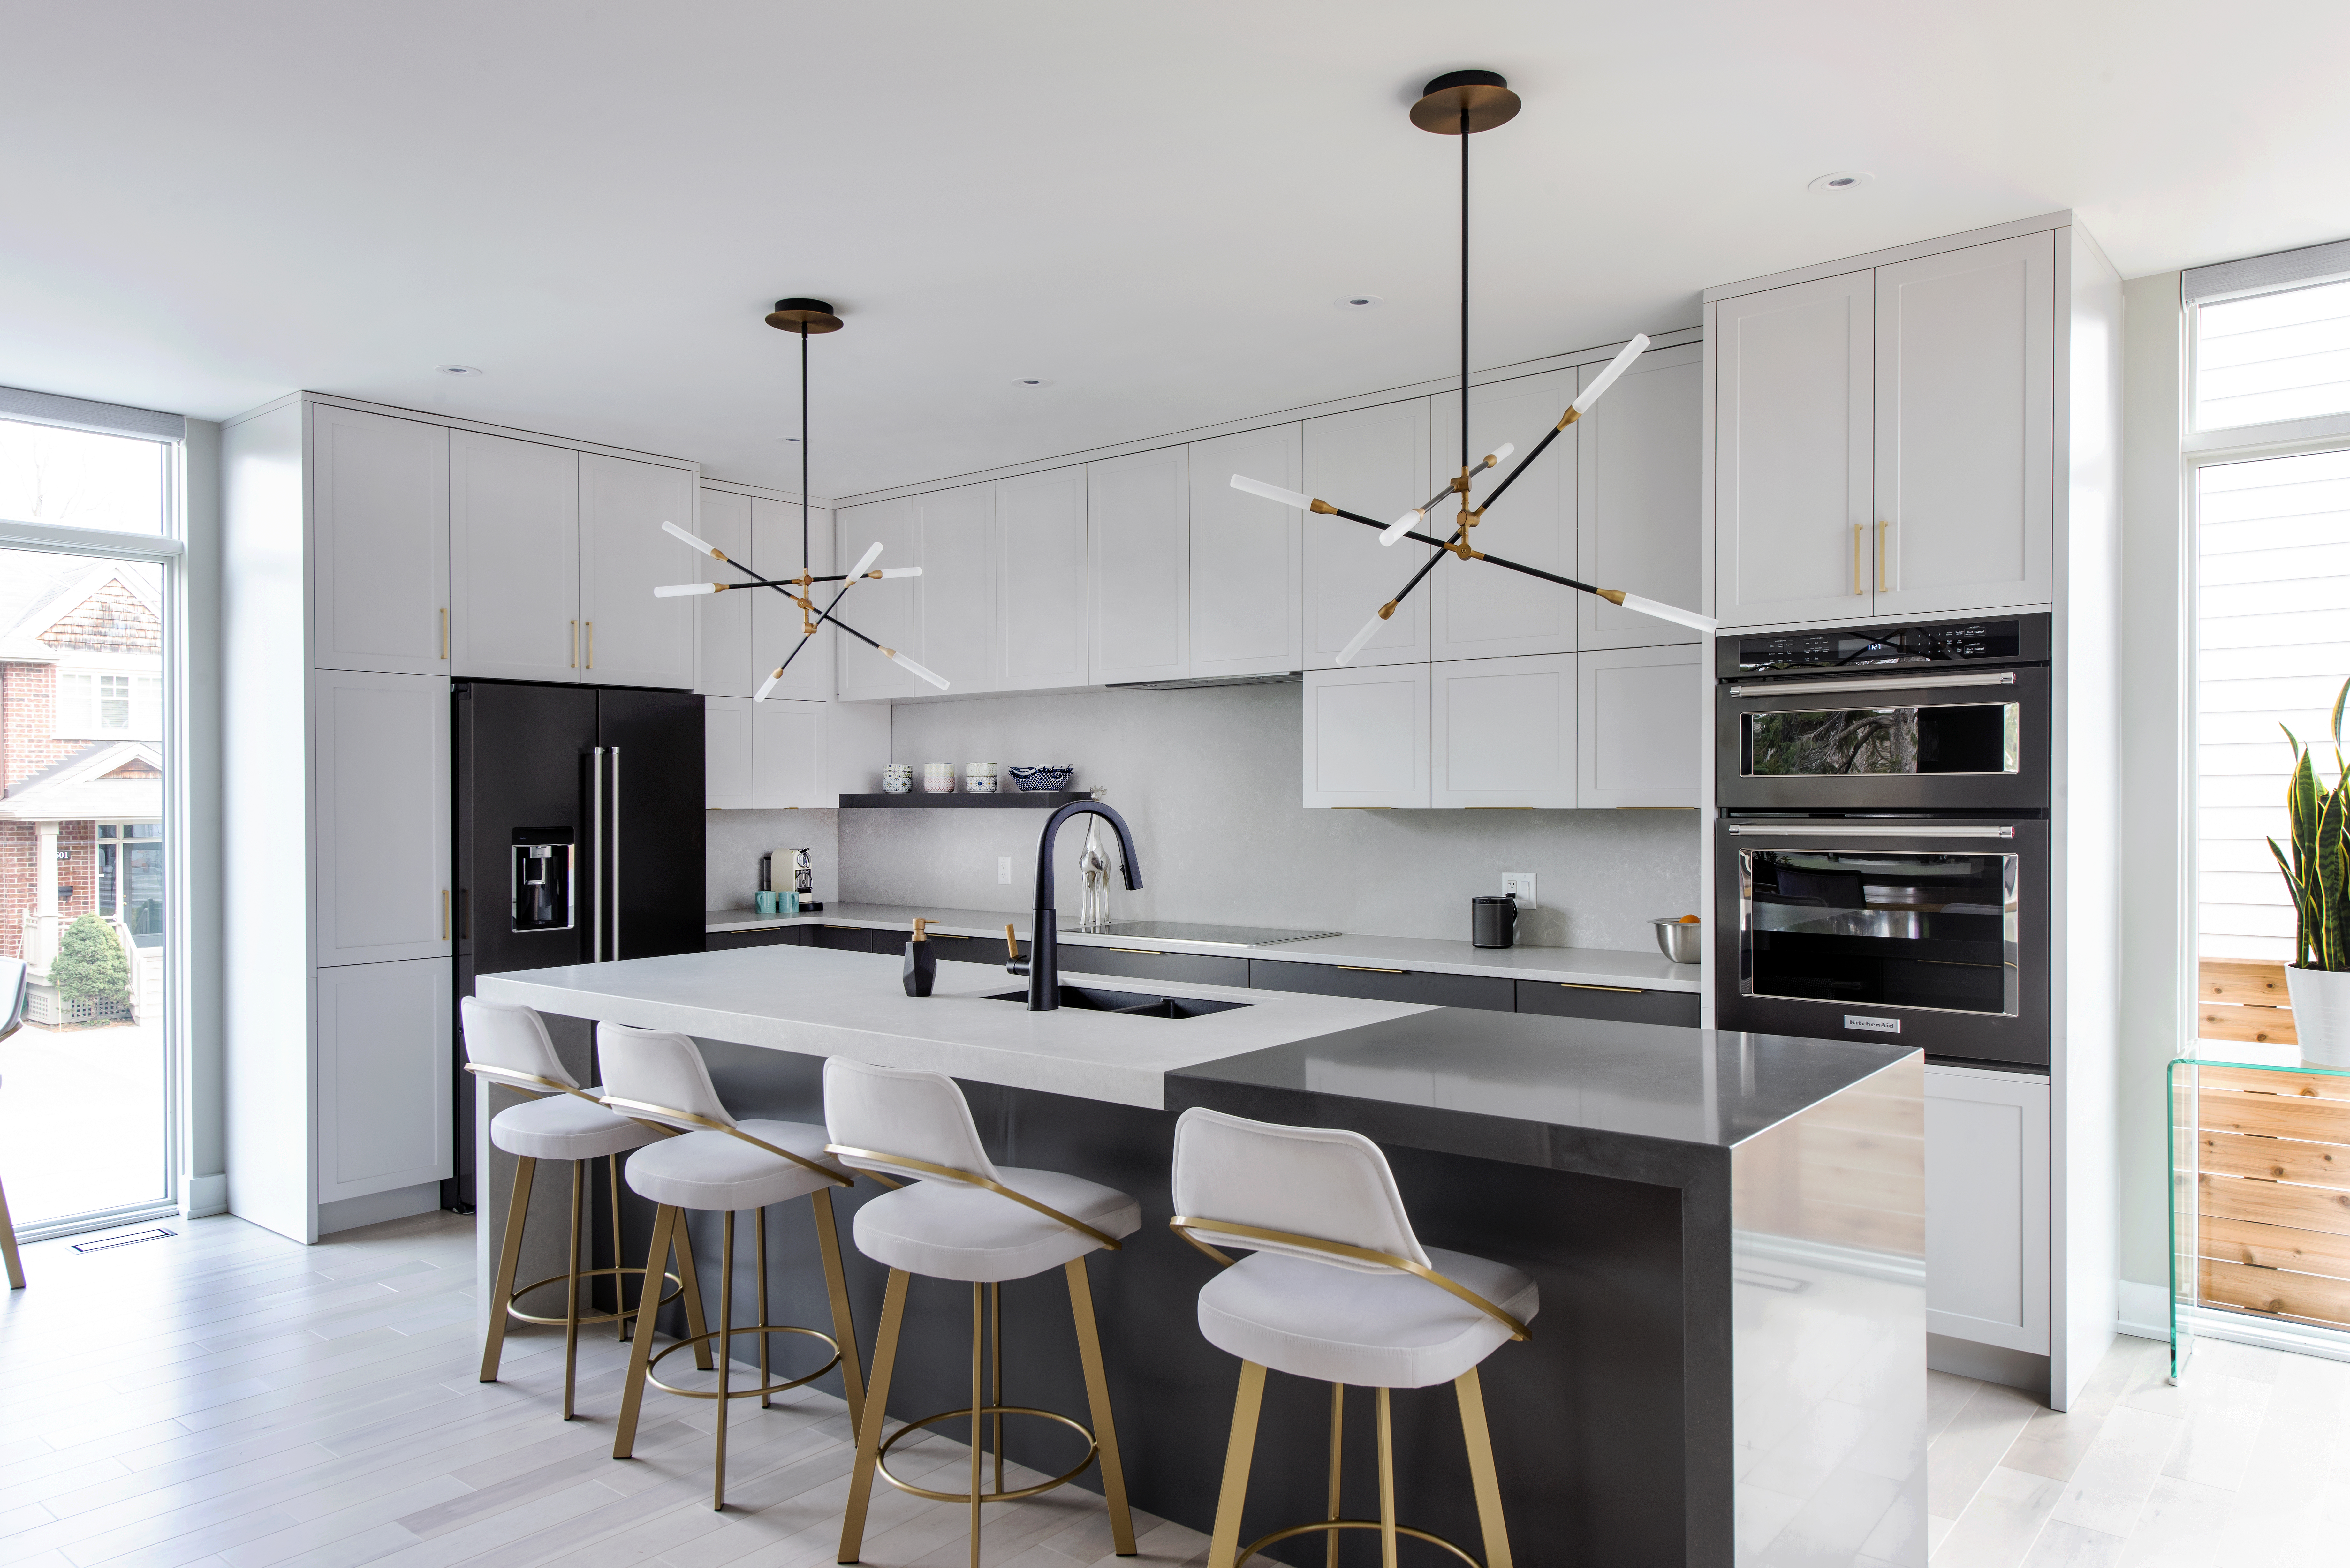 A two-toned quartz waterfall countertop in a Deslaurier kitchen.